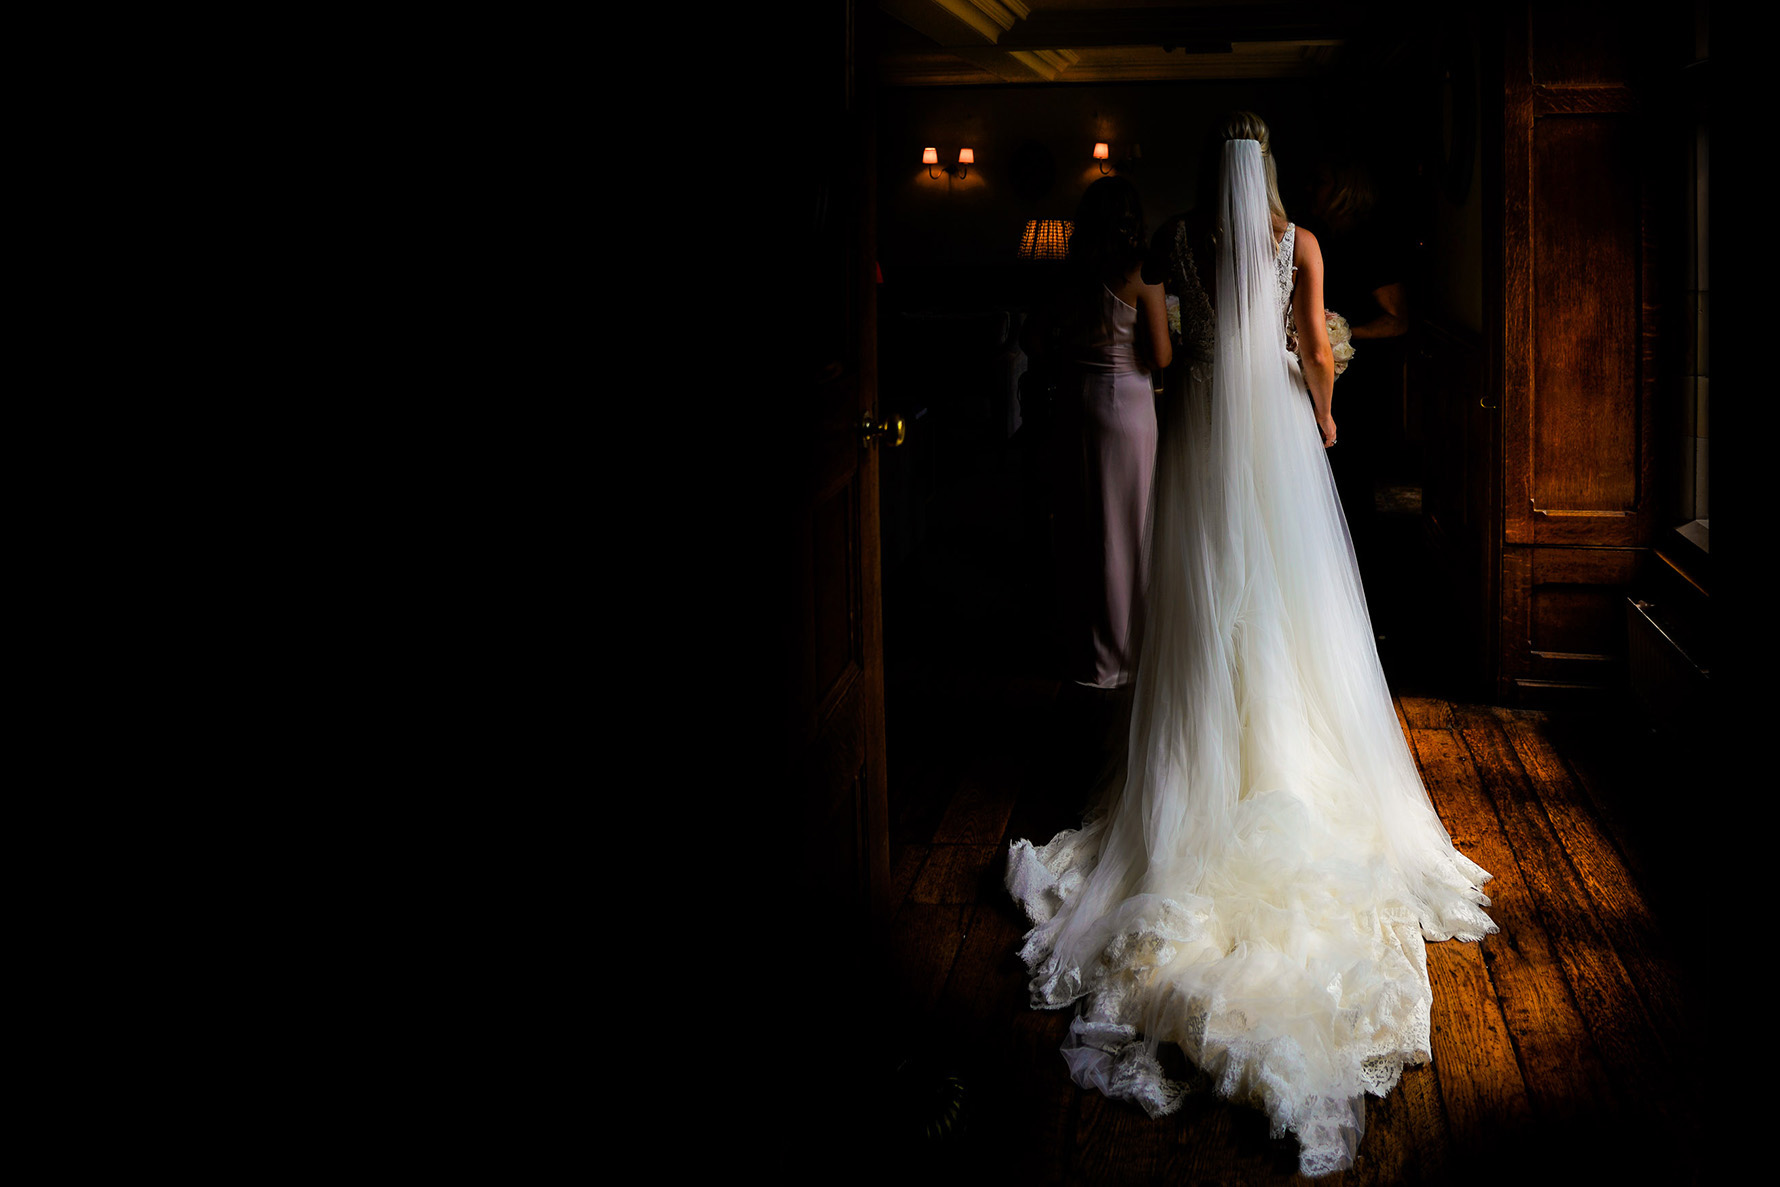 wedding dress from behind with windown light